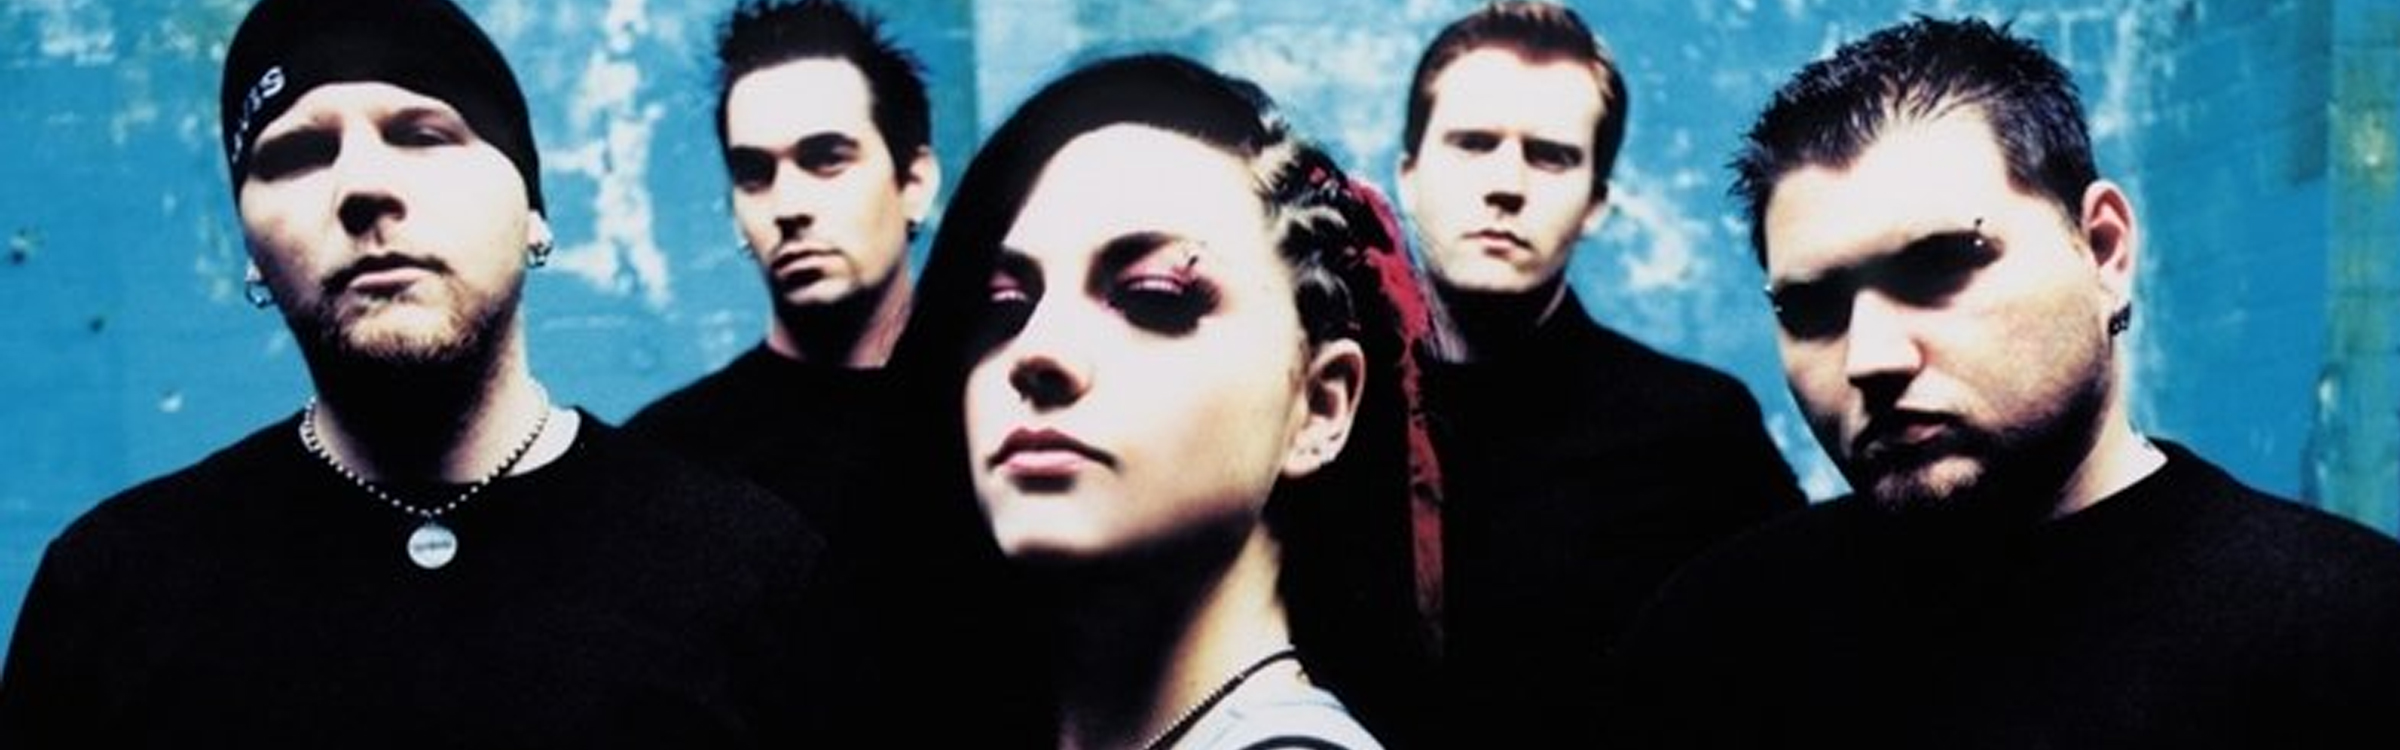 Evanescence header